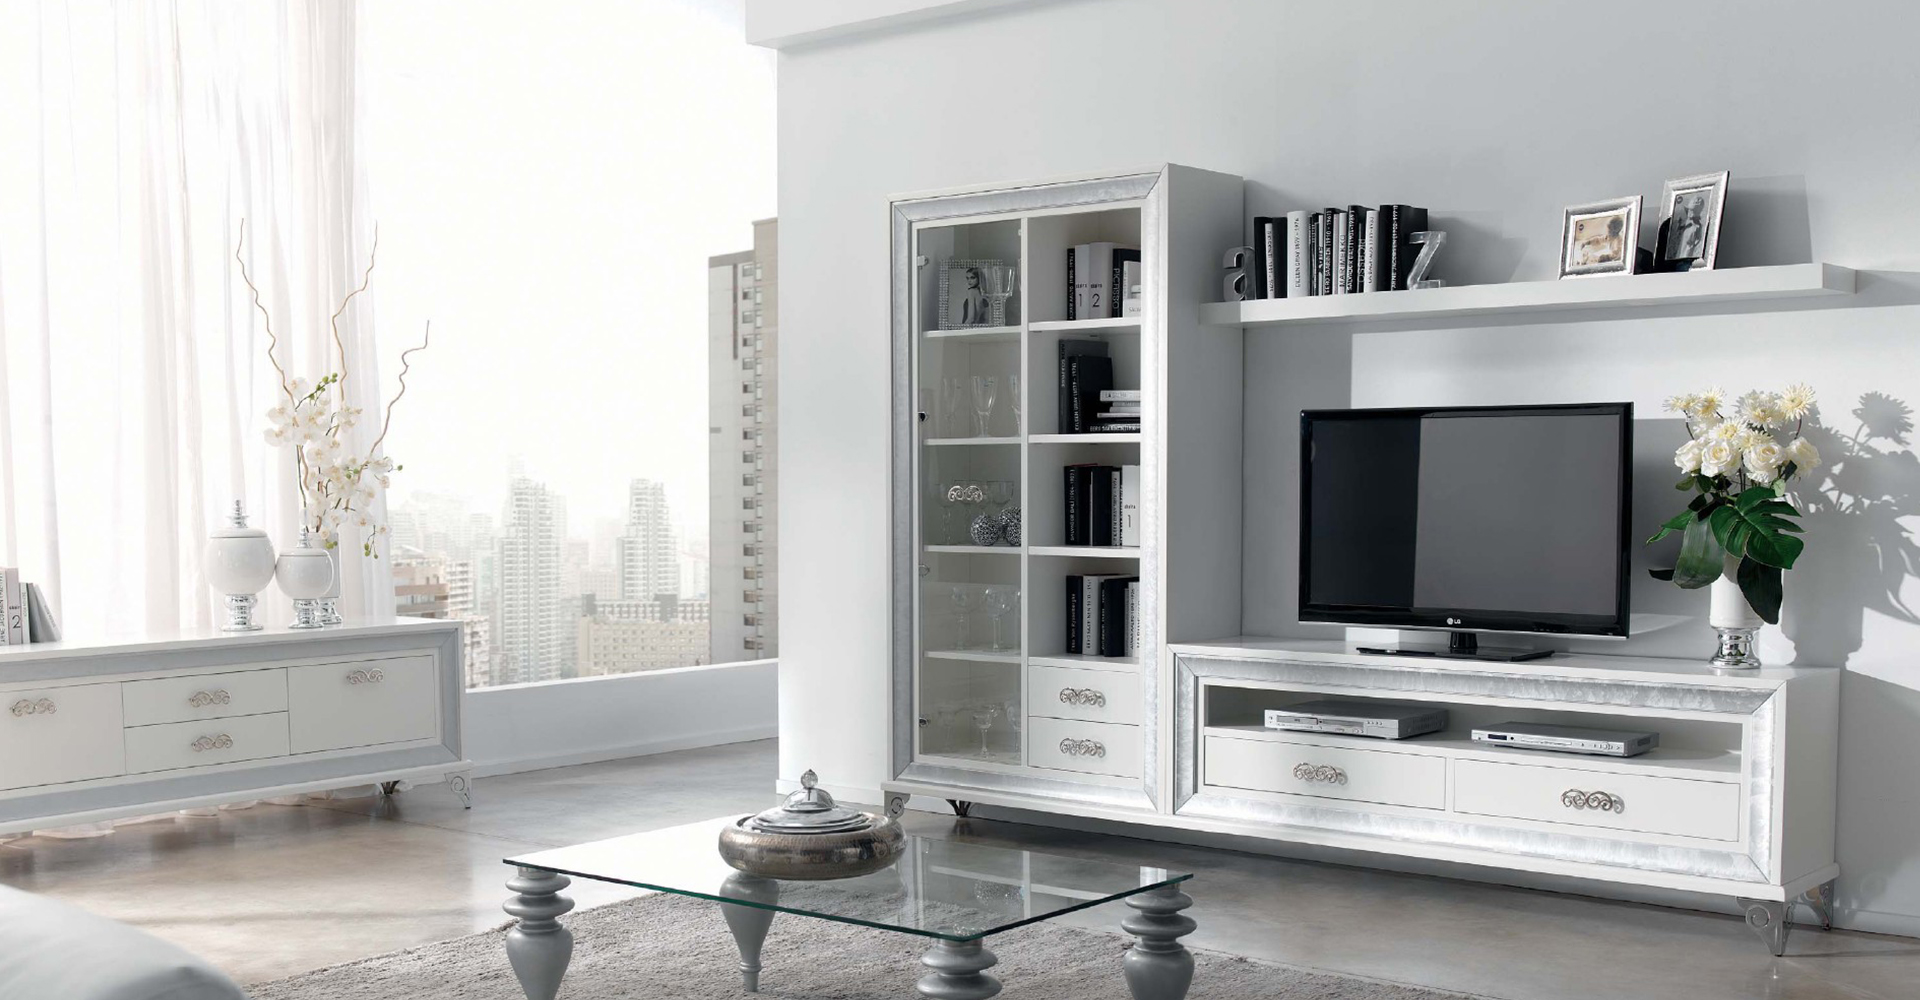 Mueble  Contemporáneo en Blanco